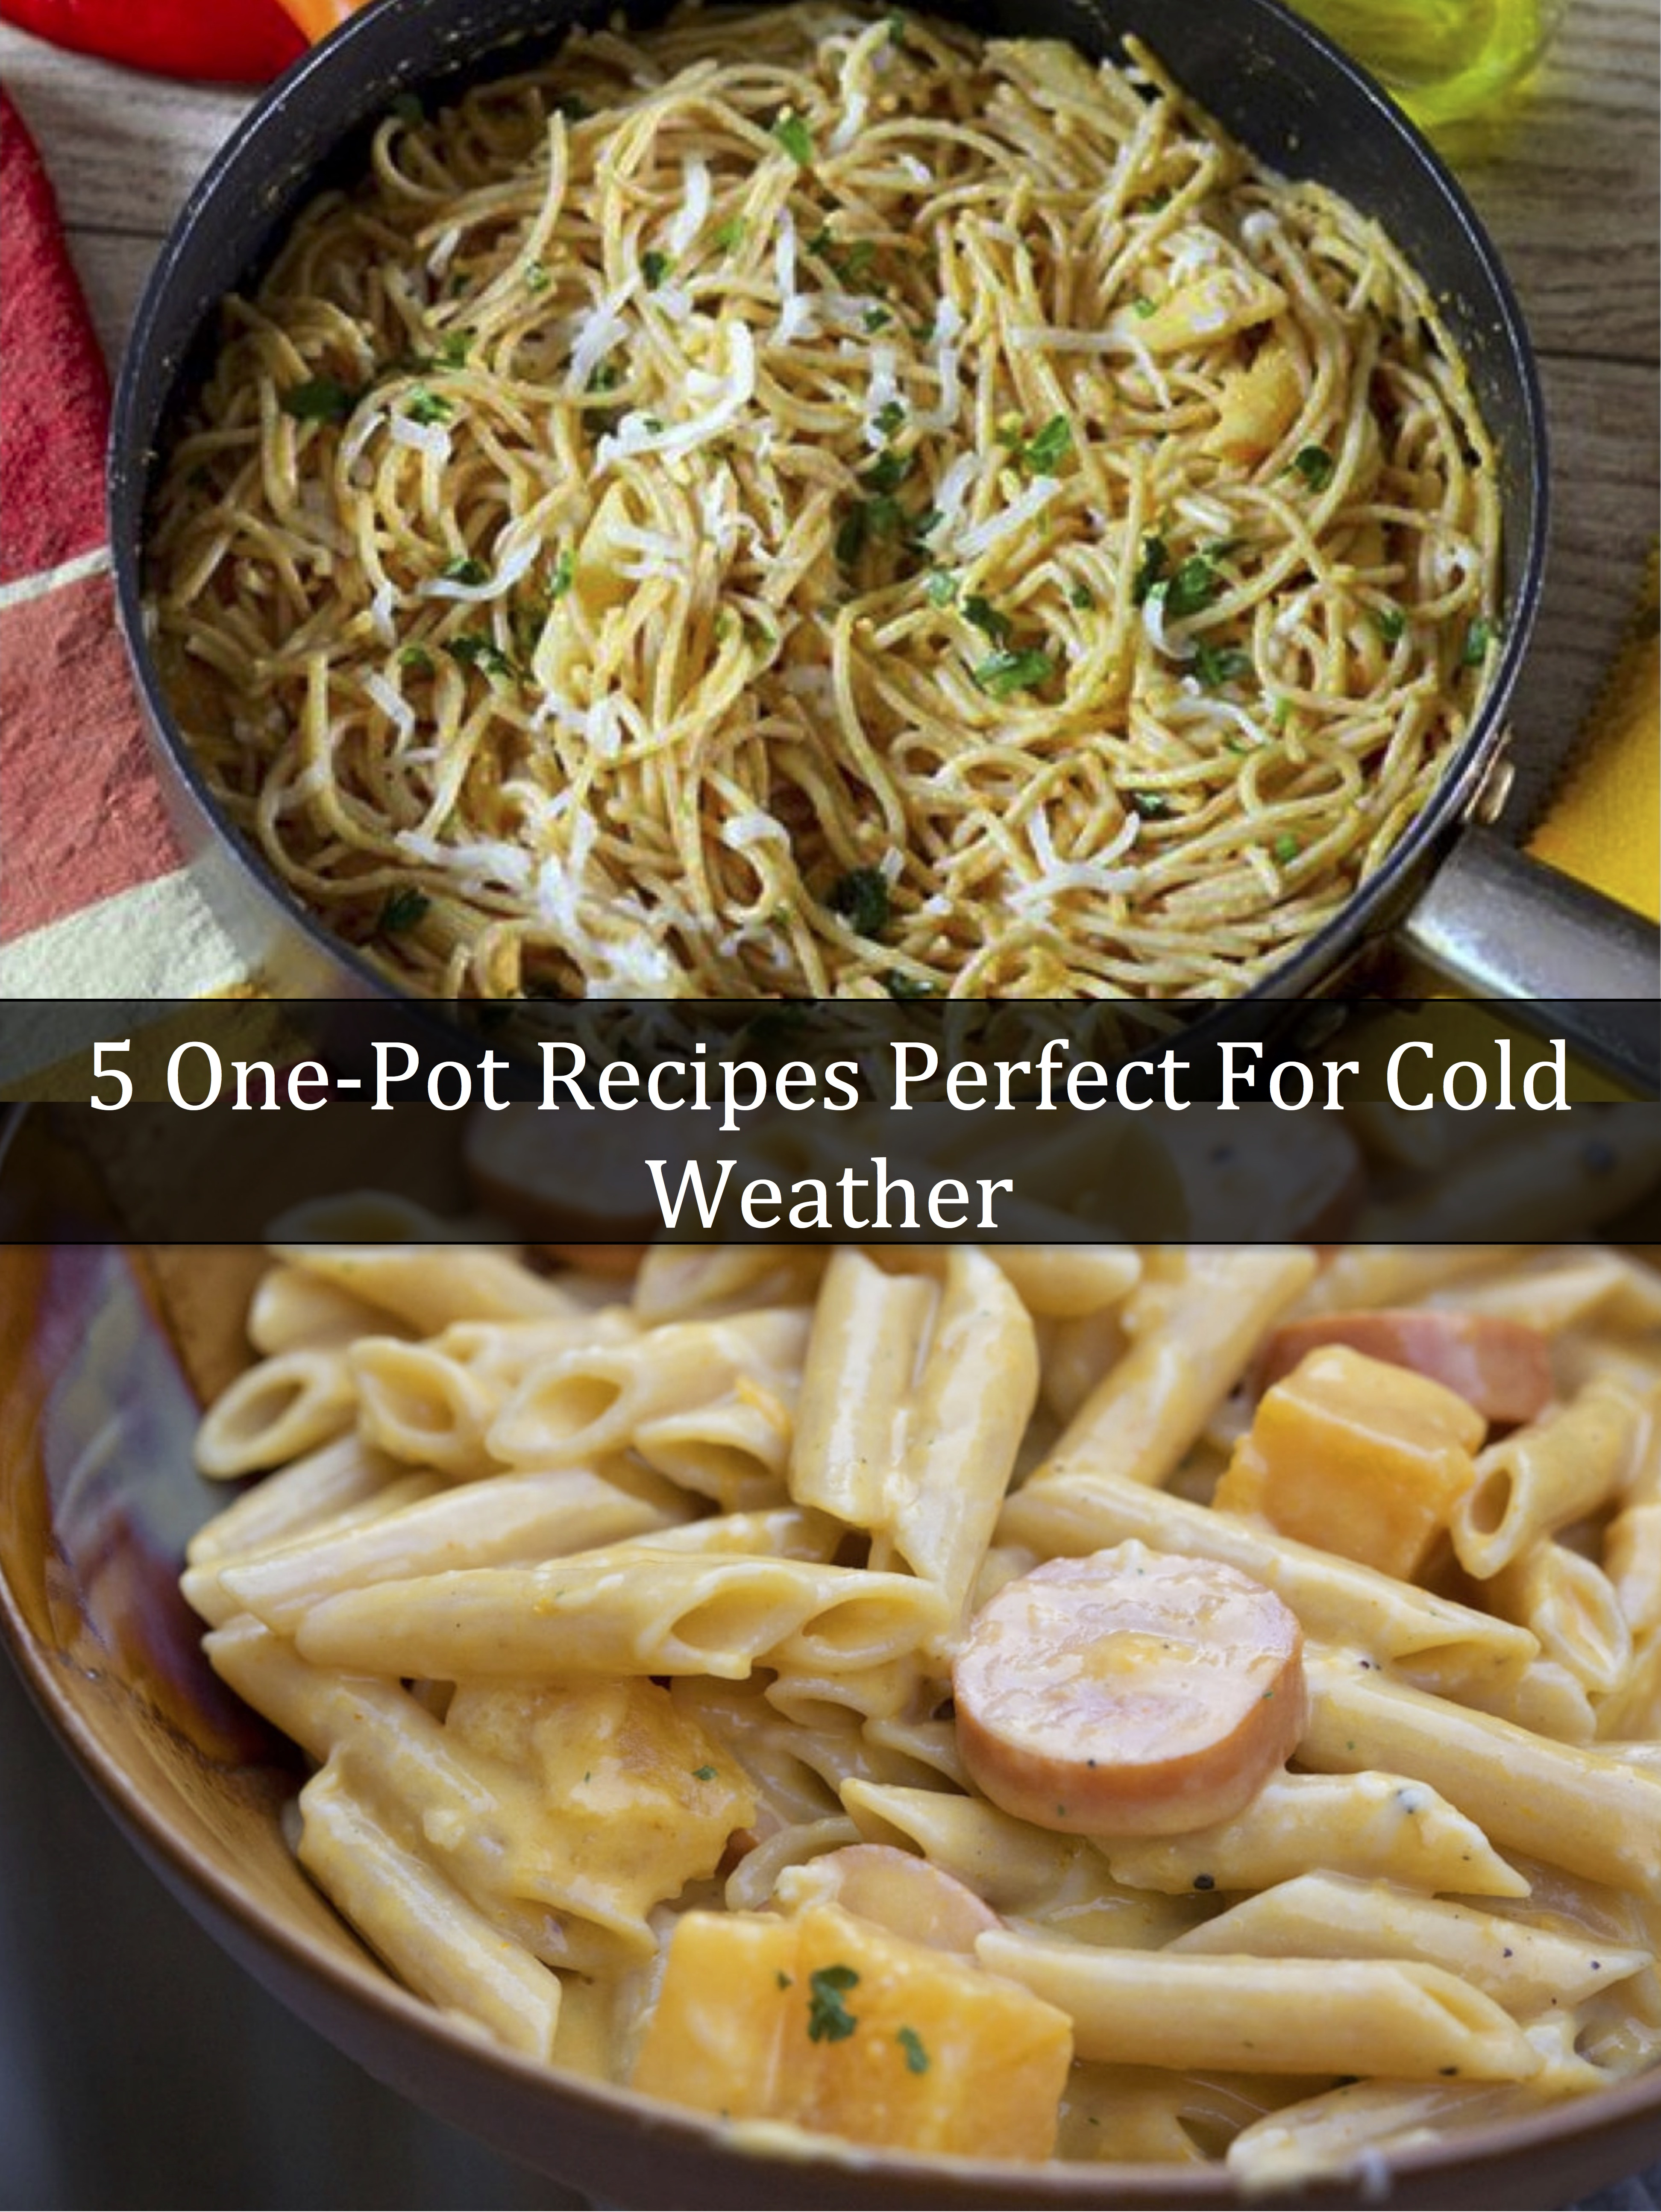 5 One-Pot Recipes Perfect for Cold Weather